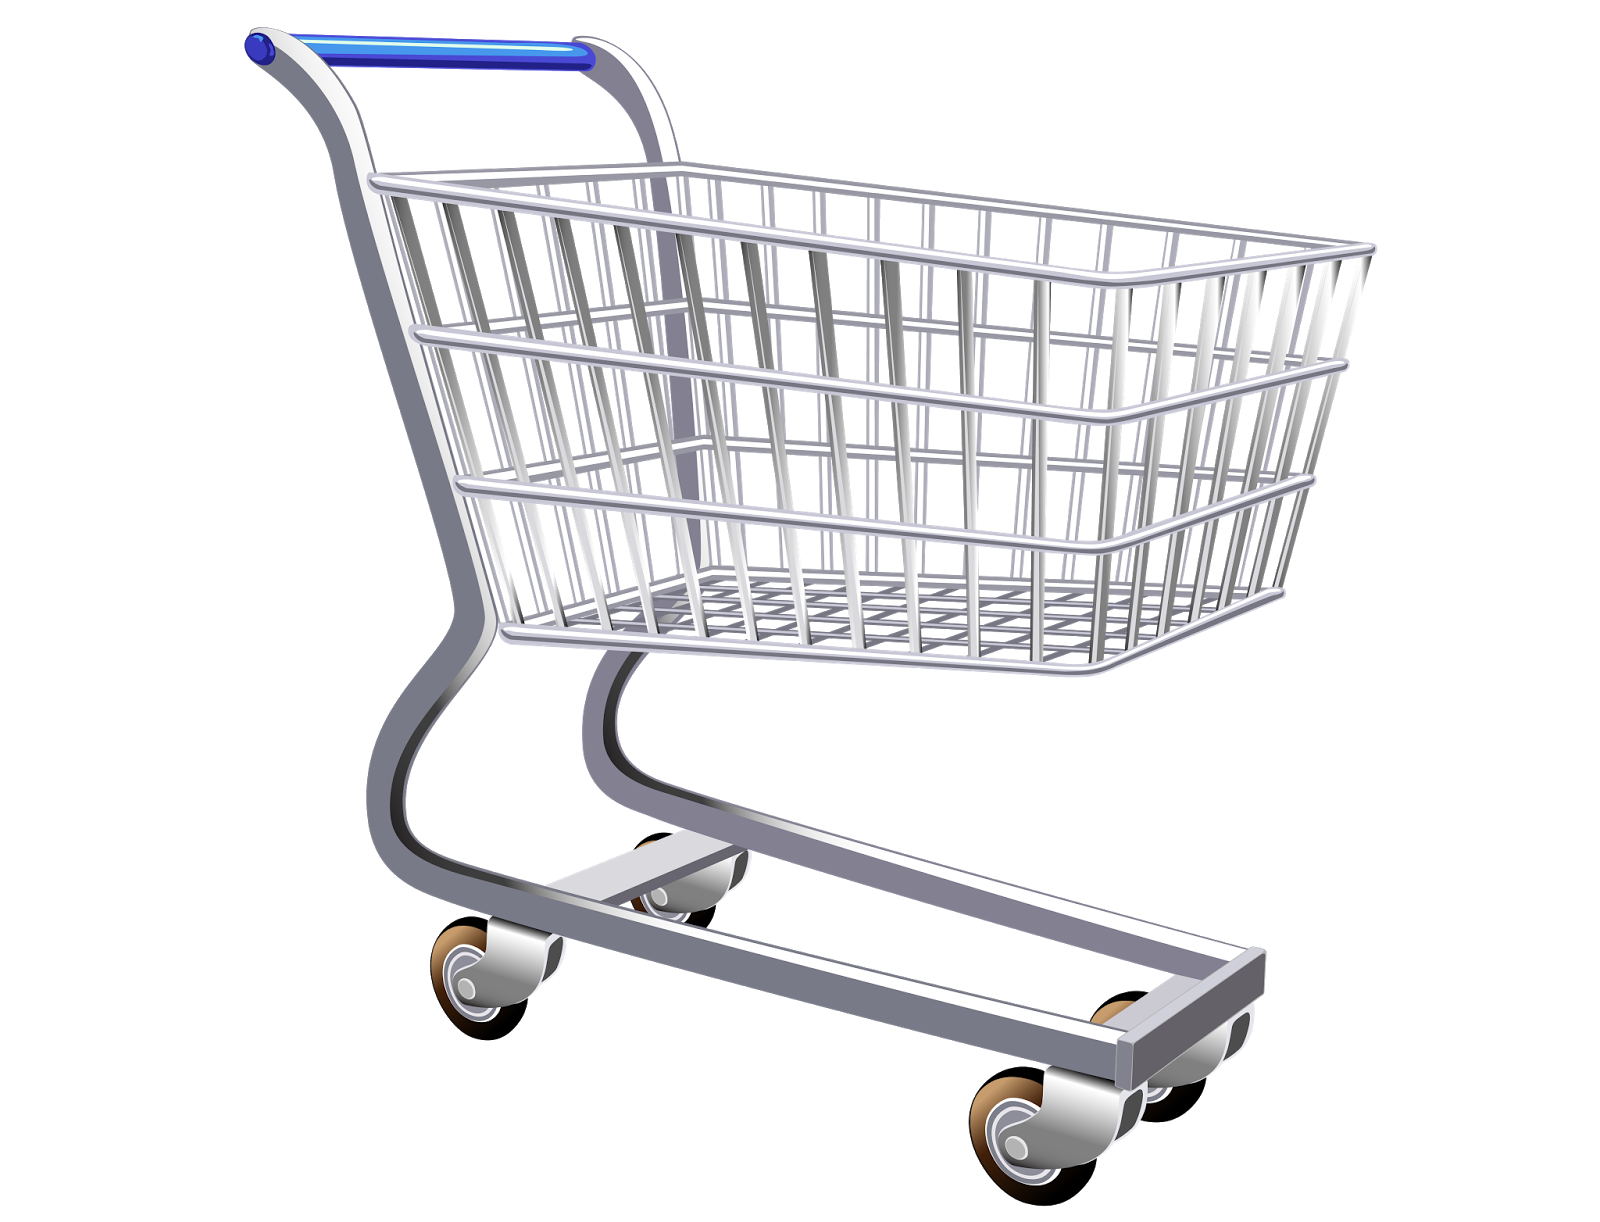 Shopping cart png image. Carriage clipart transparent background